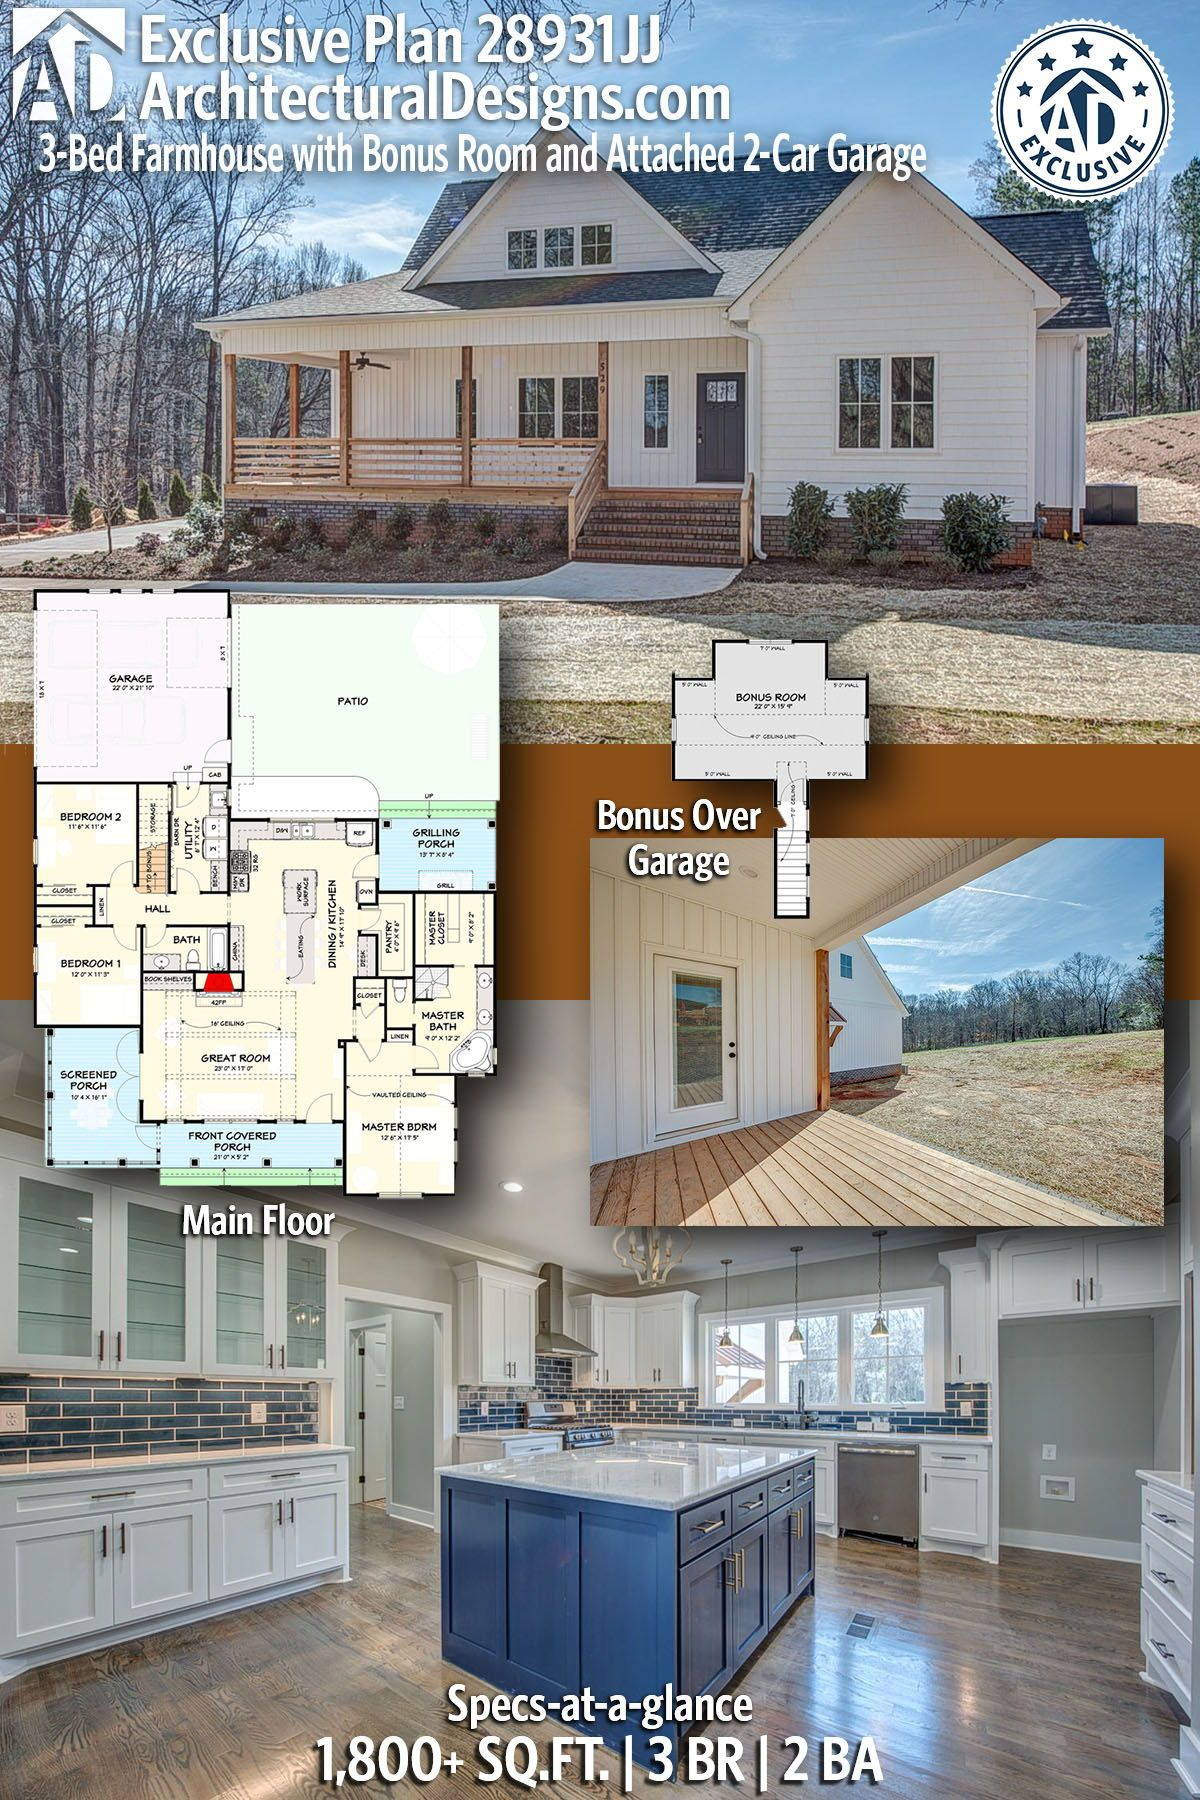 Modern Farmhouse House Plan 28931JJ gives you 1,800+ sq ft of living space with 3 bedrooms and 2 full baths. AD House Plan #28931JJ #adhouseplans #architecturaldesigns #houseplans #homeplans #floorplans #homeplan #floorplan #floorplans #houseplan